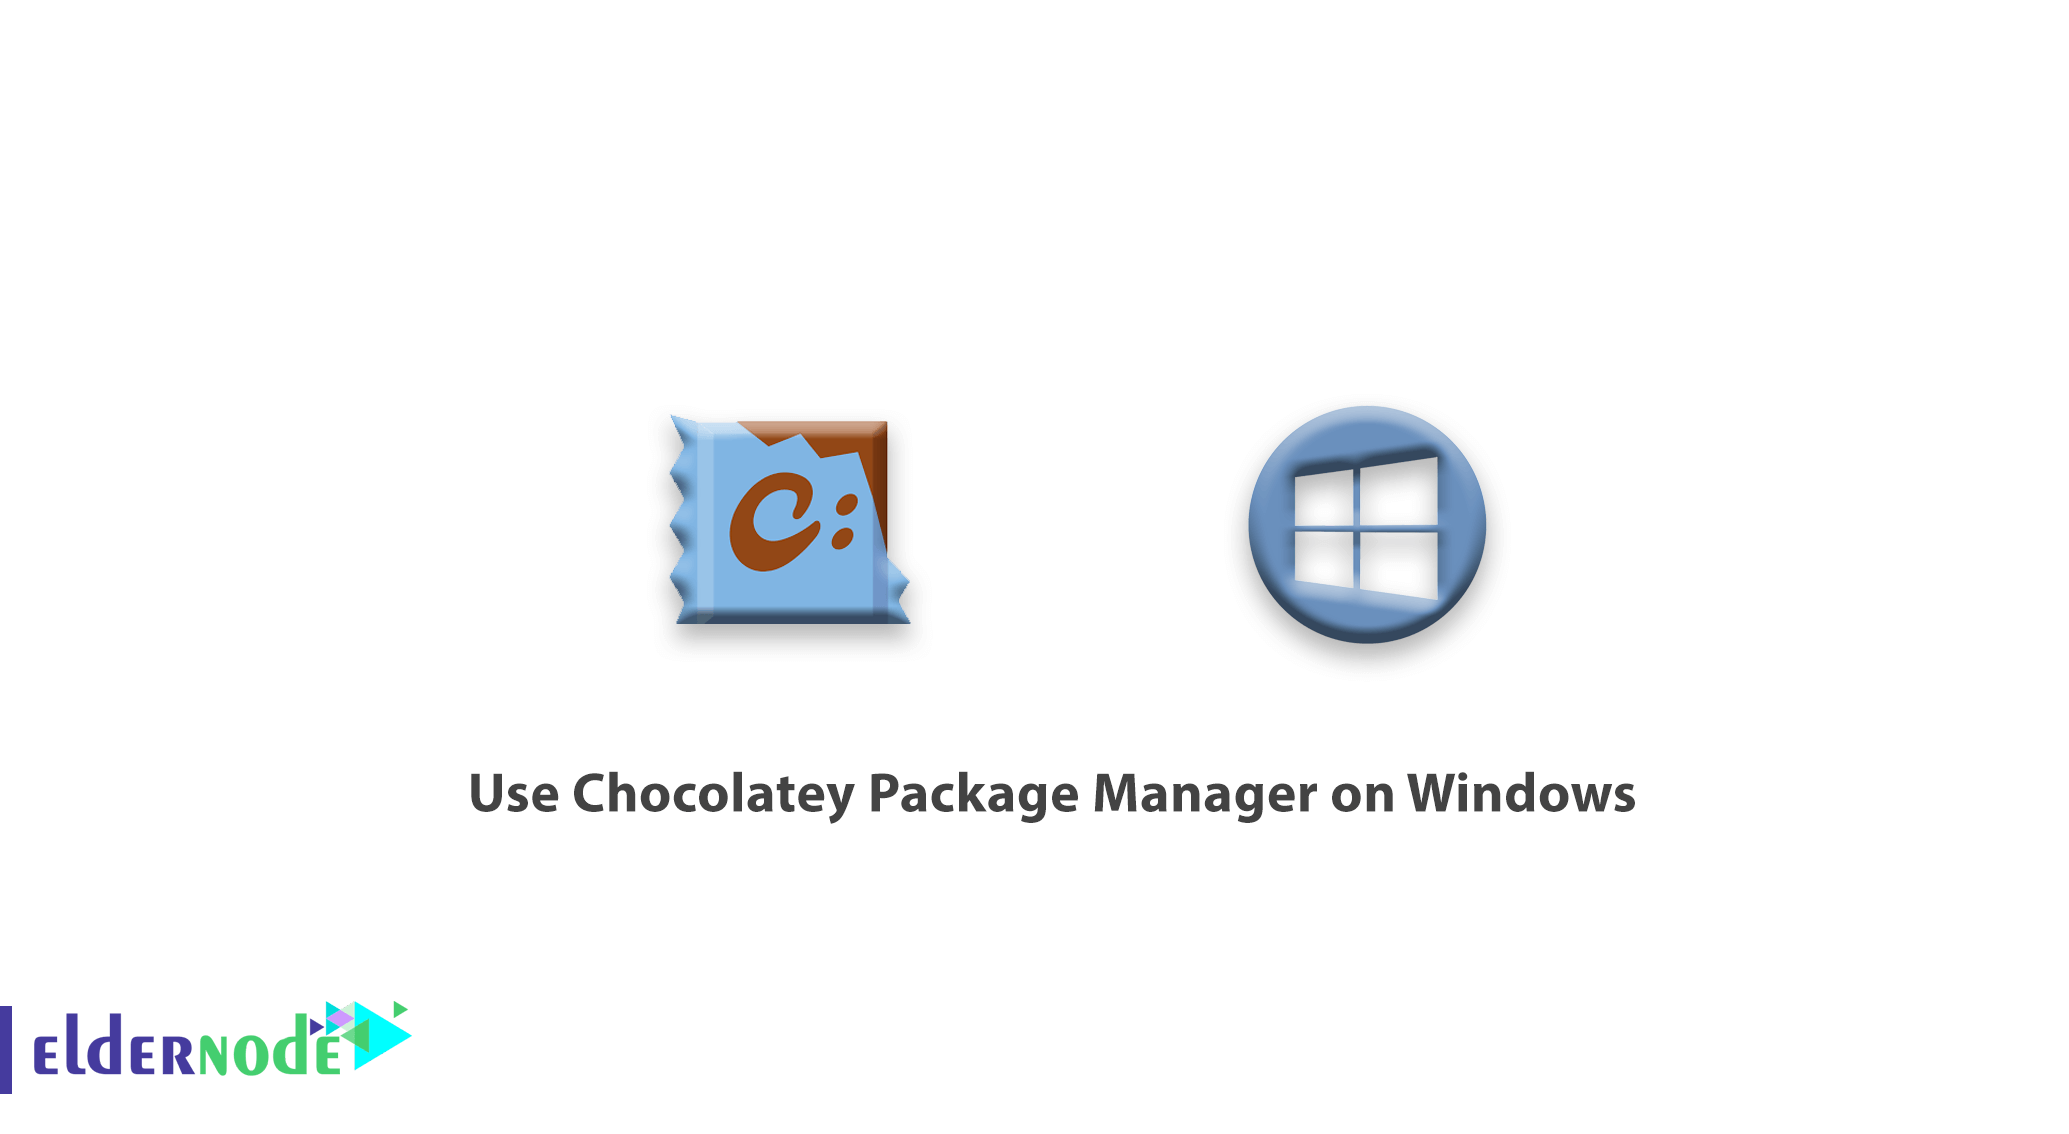 How to Use Chocolatey Package Manager on Windows